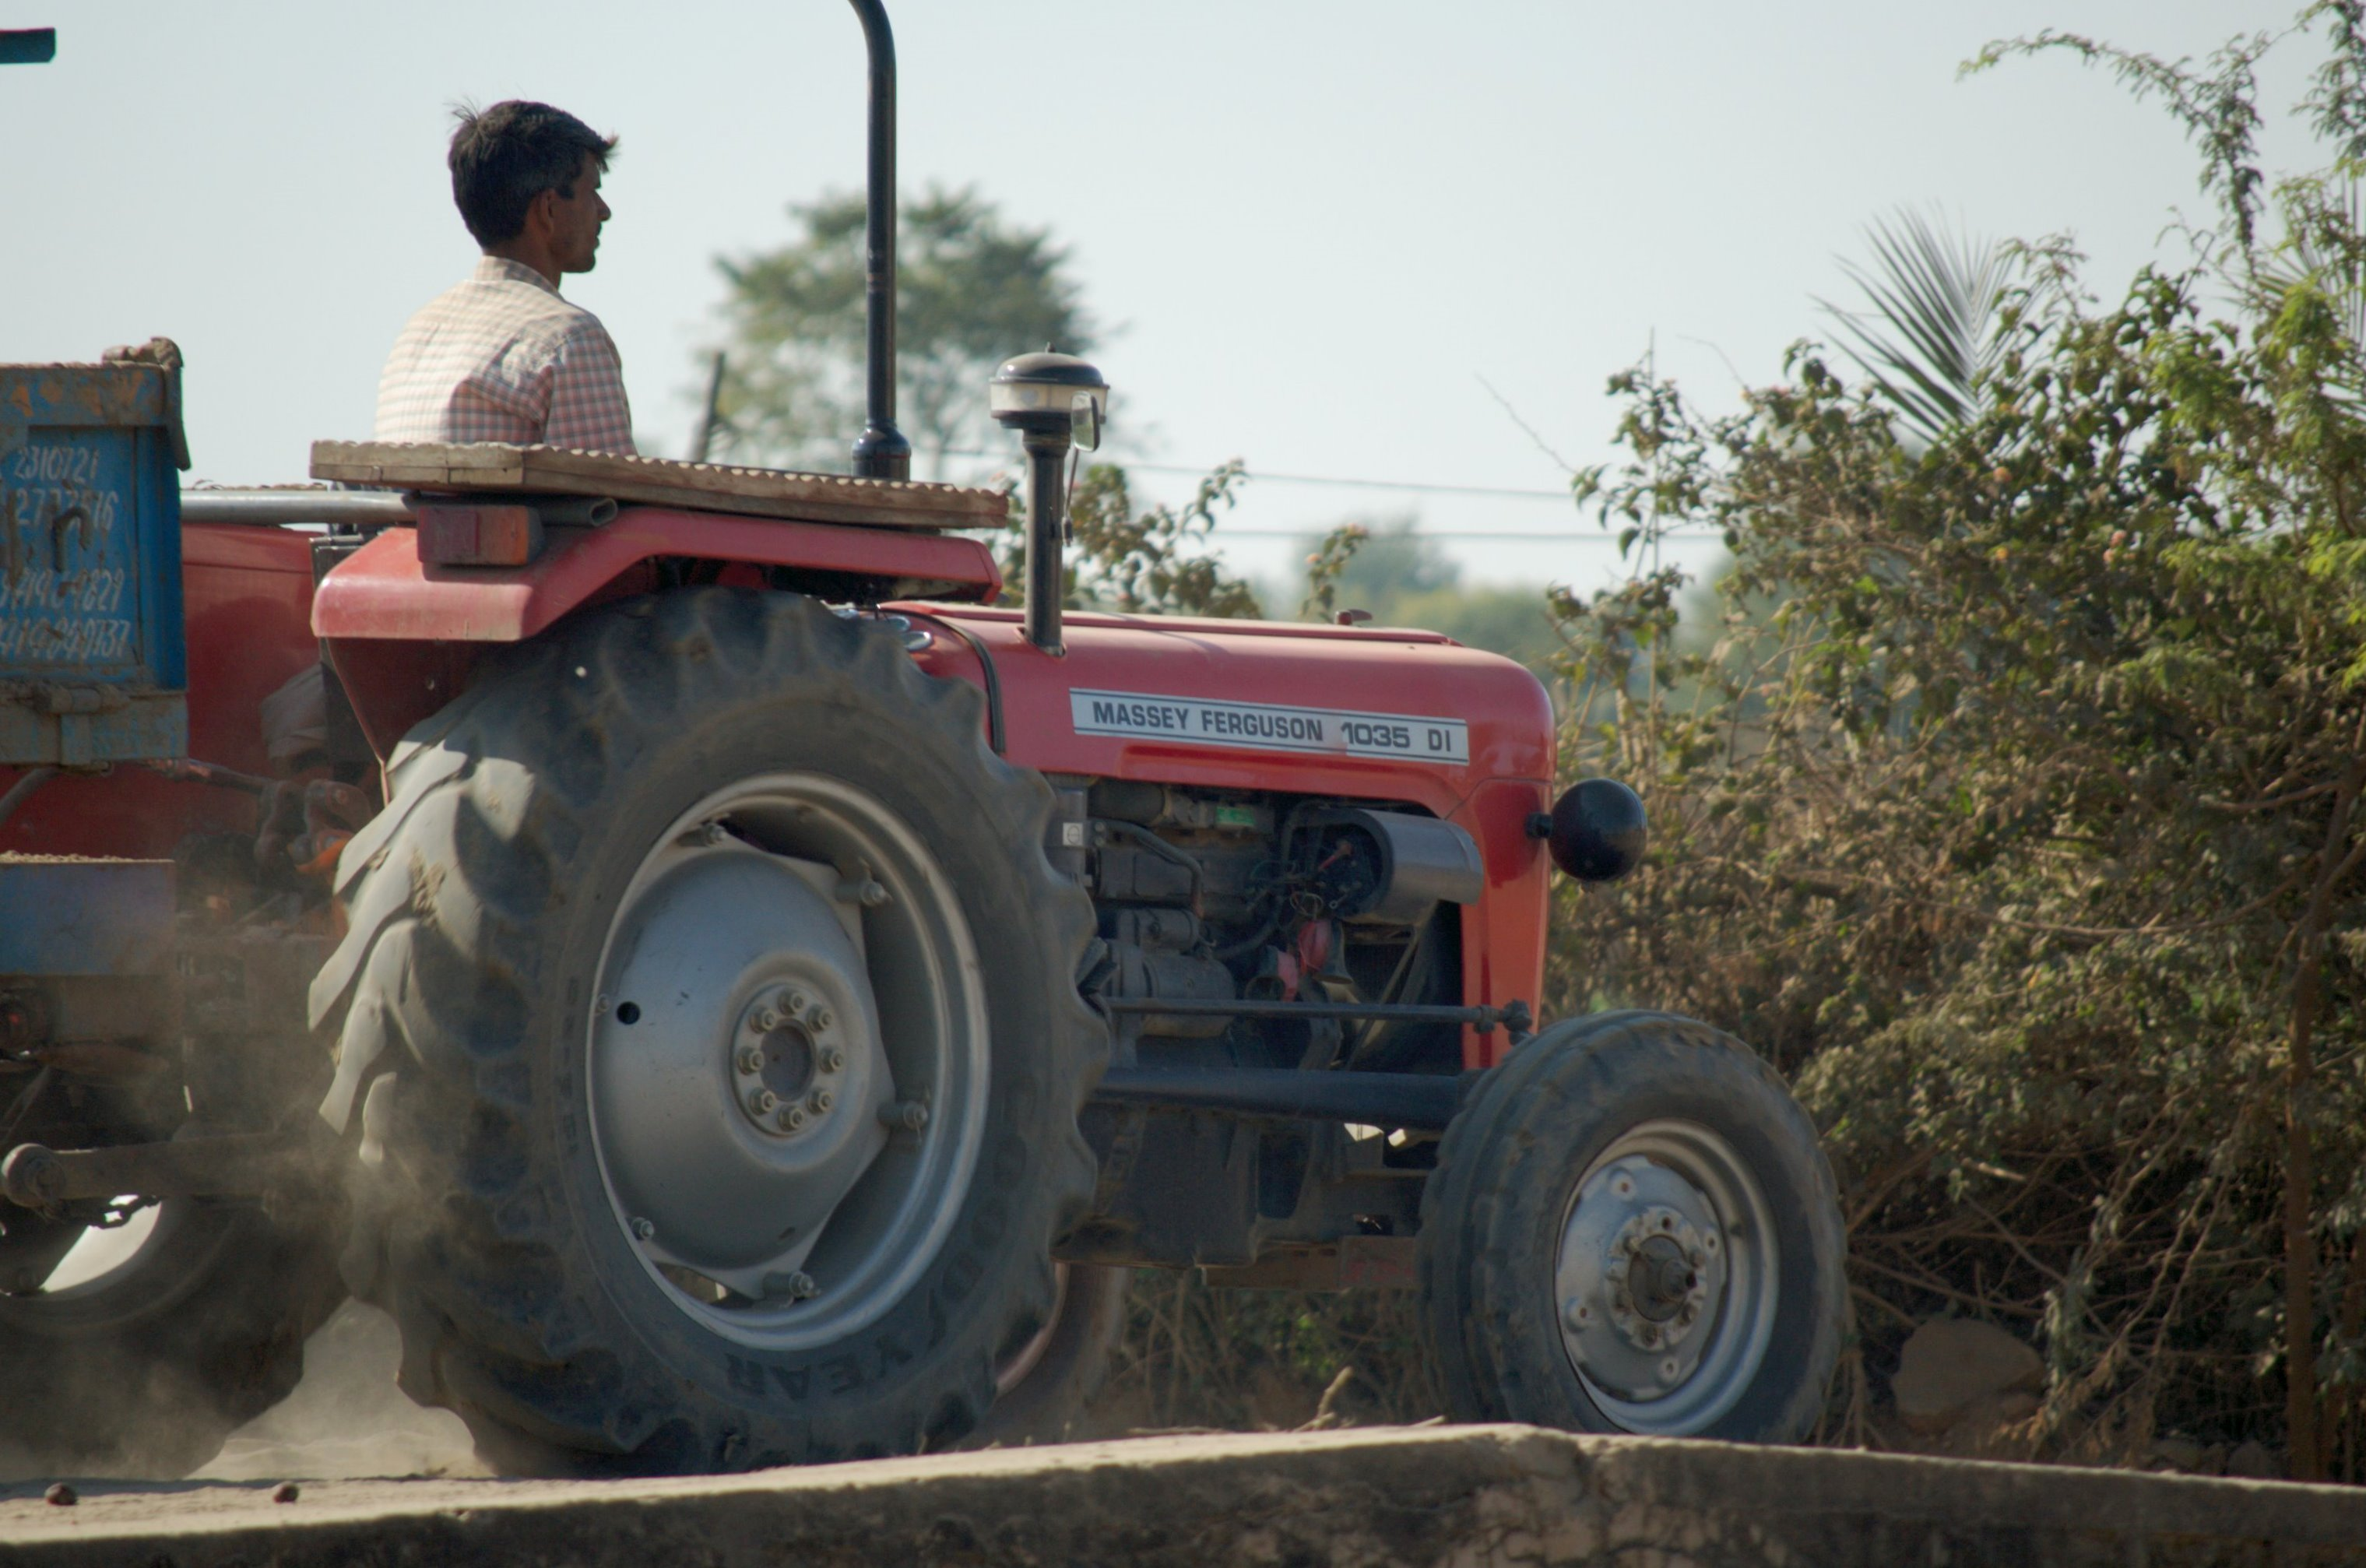 File:Massey Ferguson 1035 DI in India.jpg